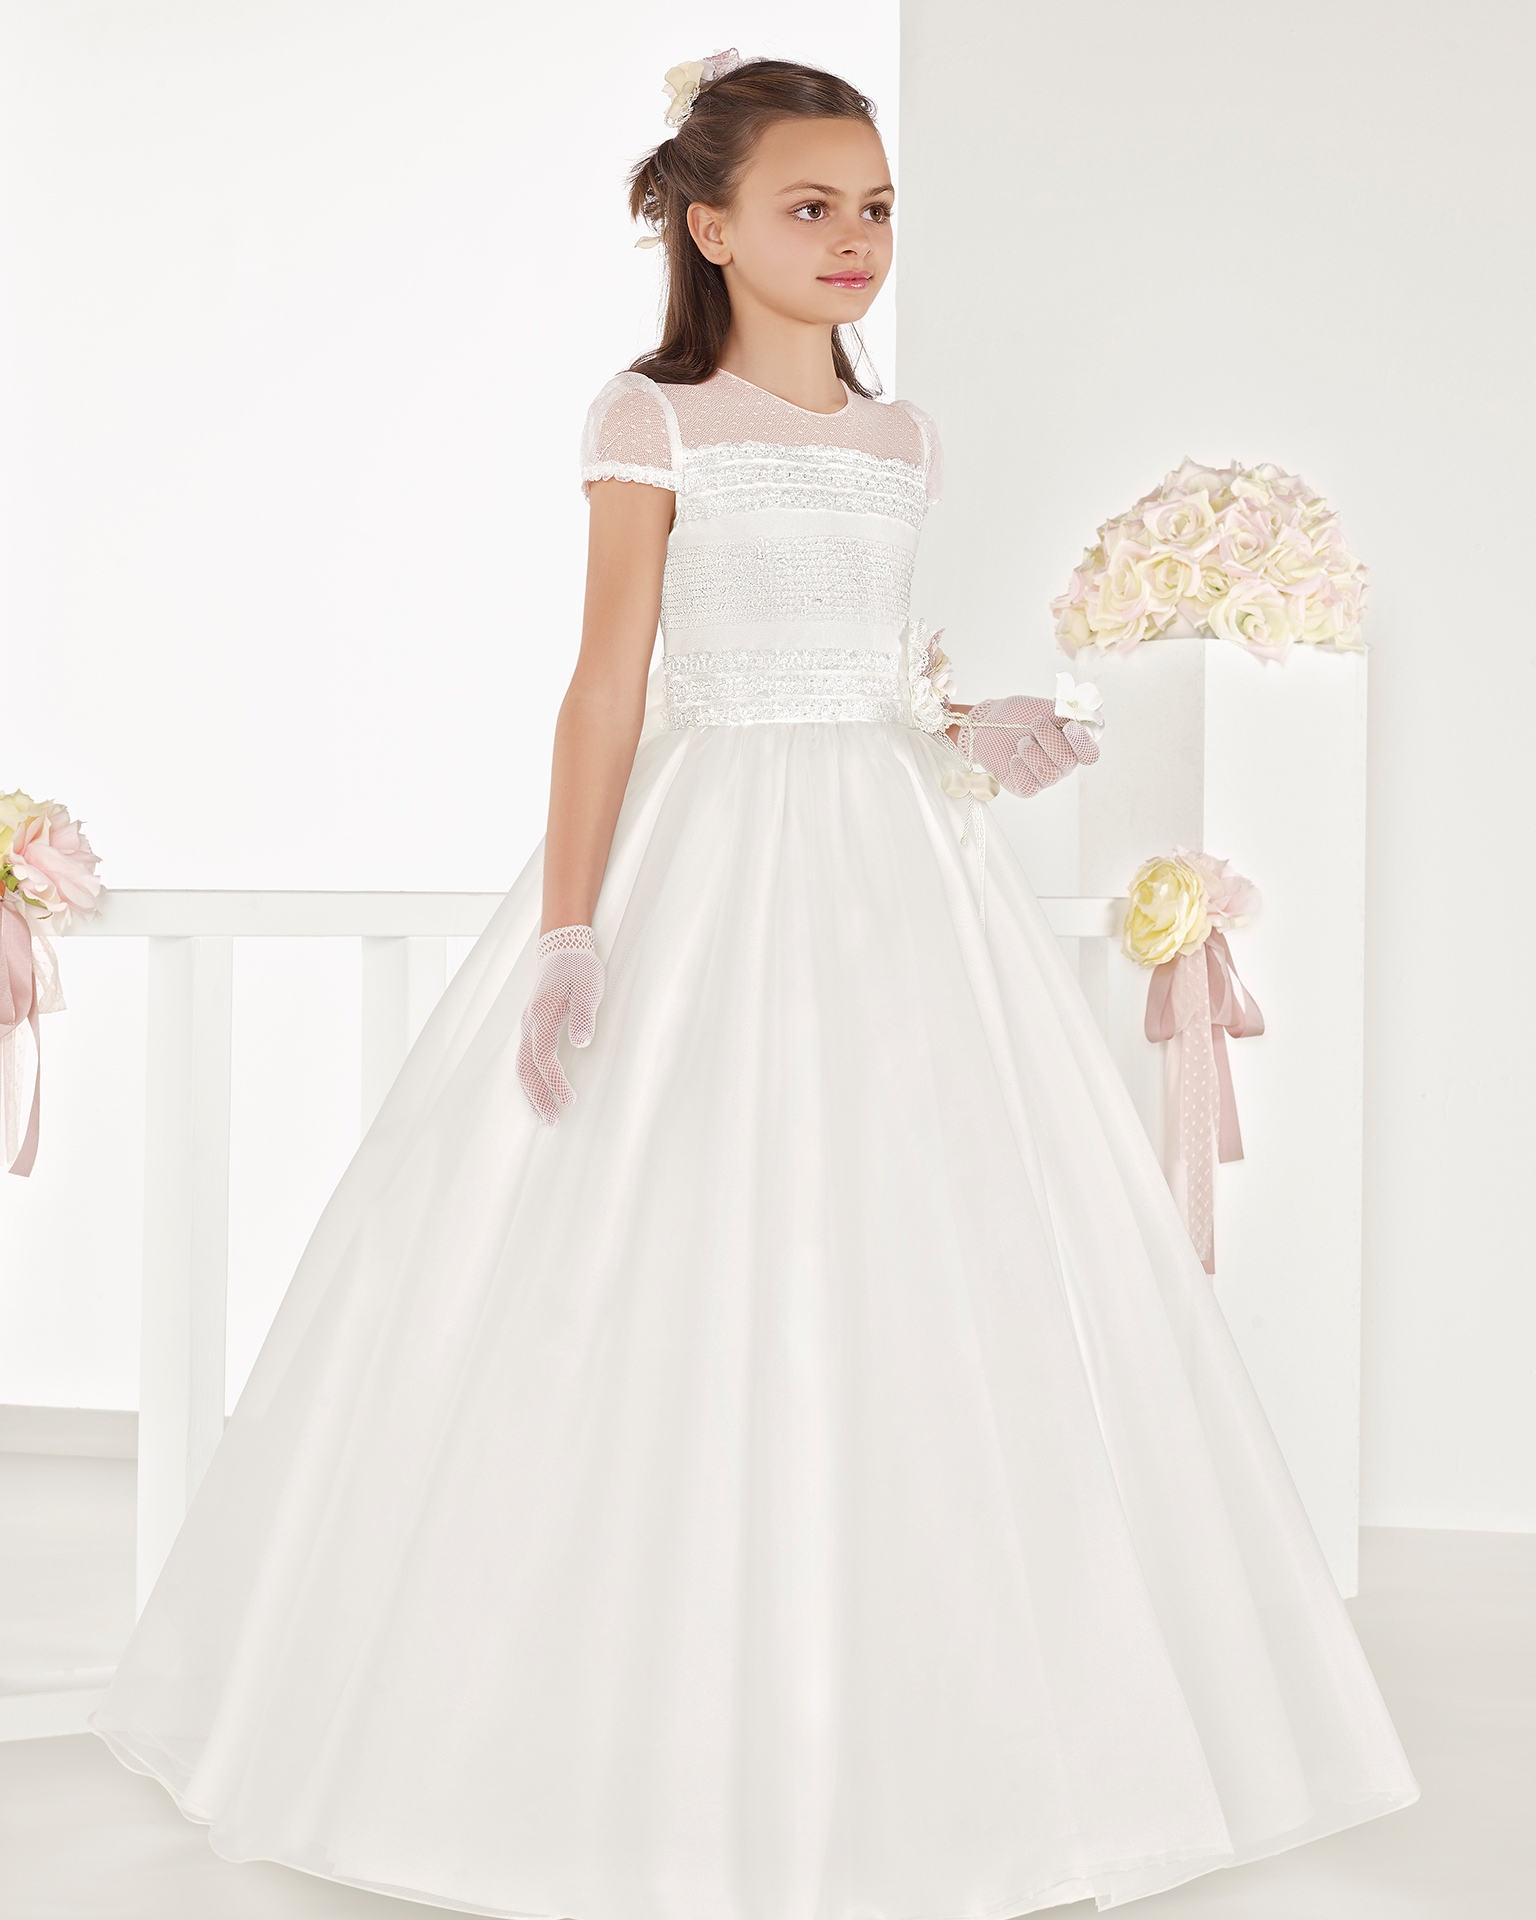 Ballgown-style matt organza First Communion or bridesmaid's dress with regular waist, in natural. 2018 AIRE COMUNION Collection.